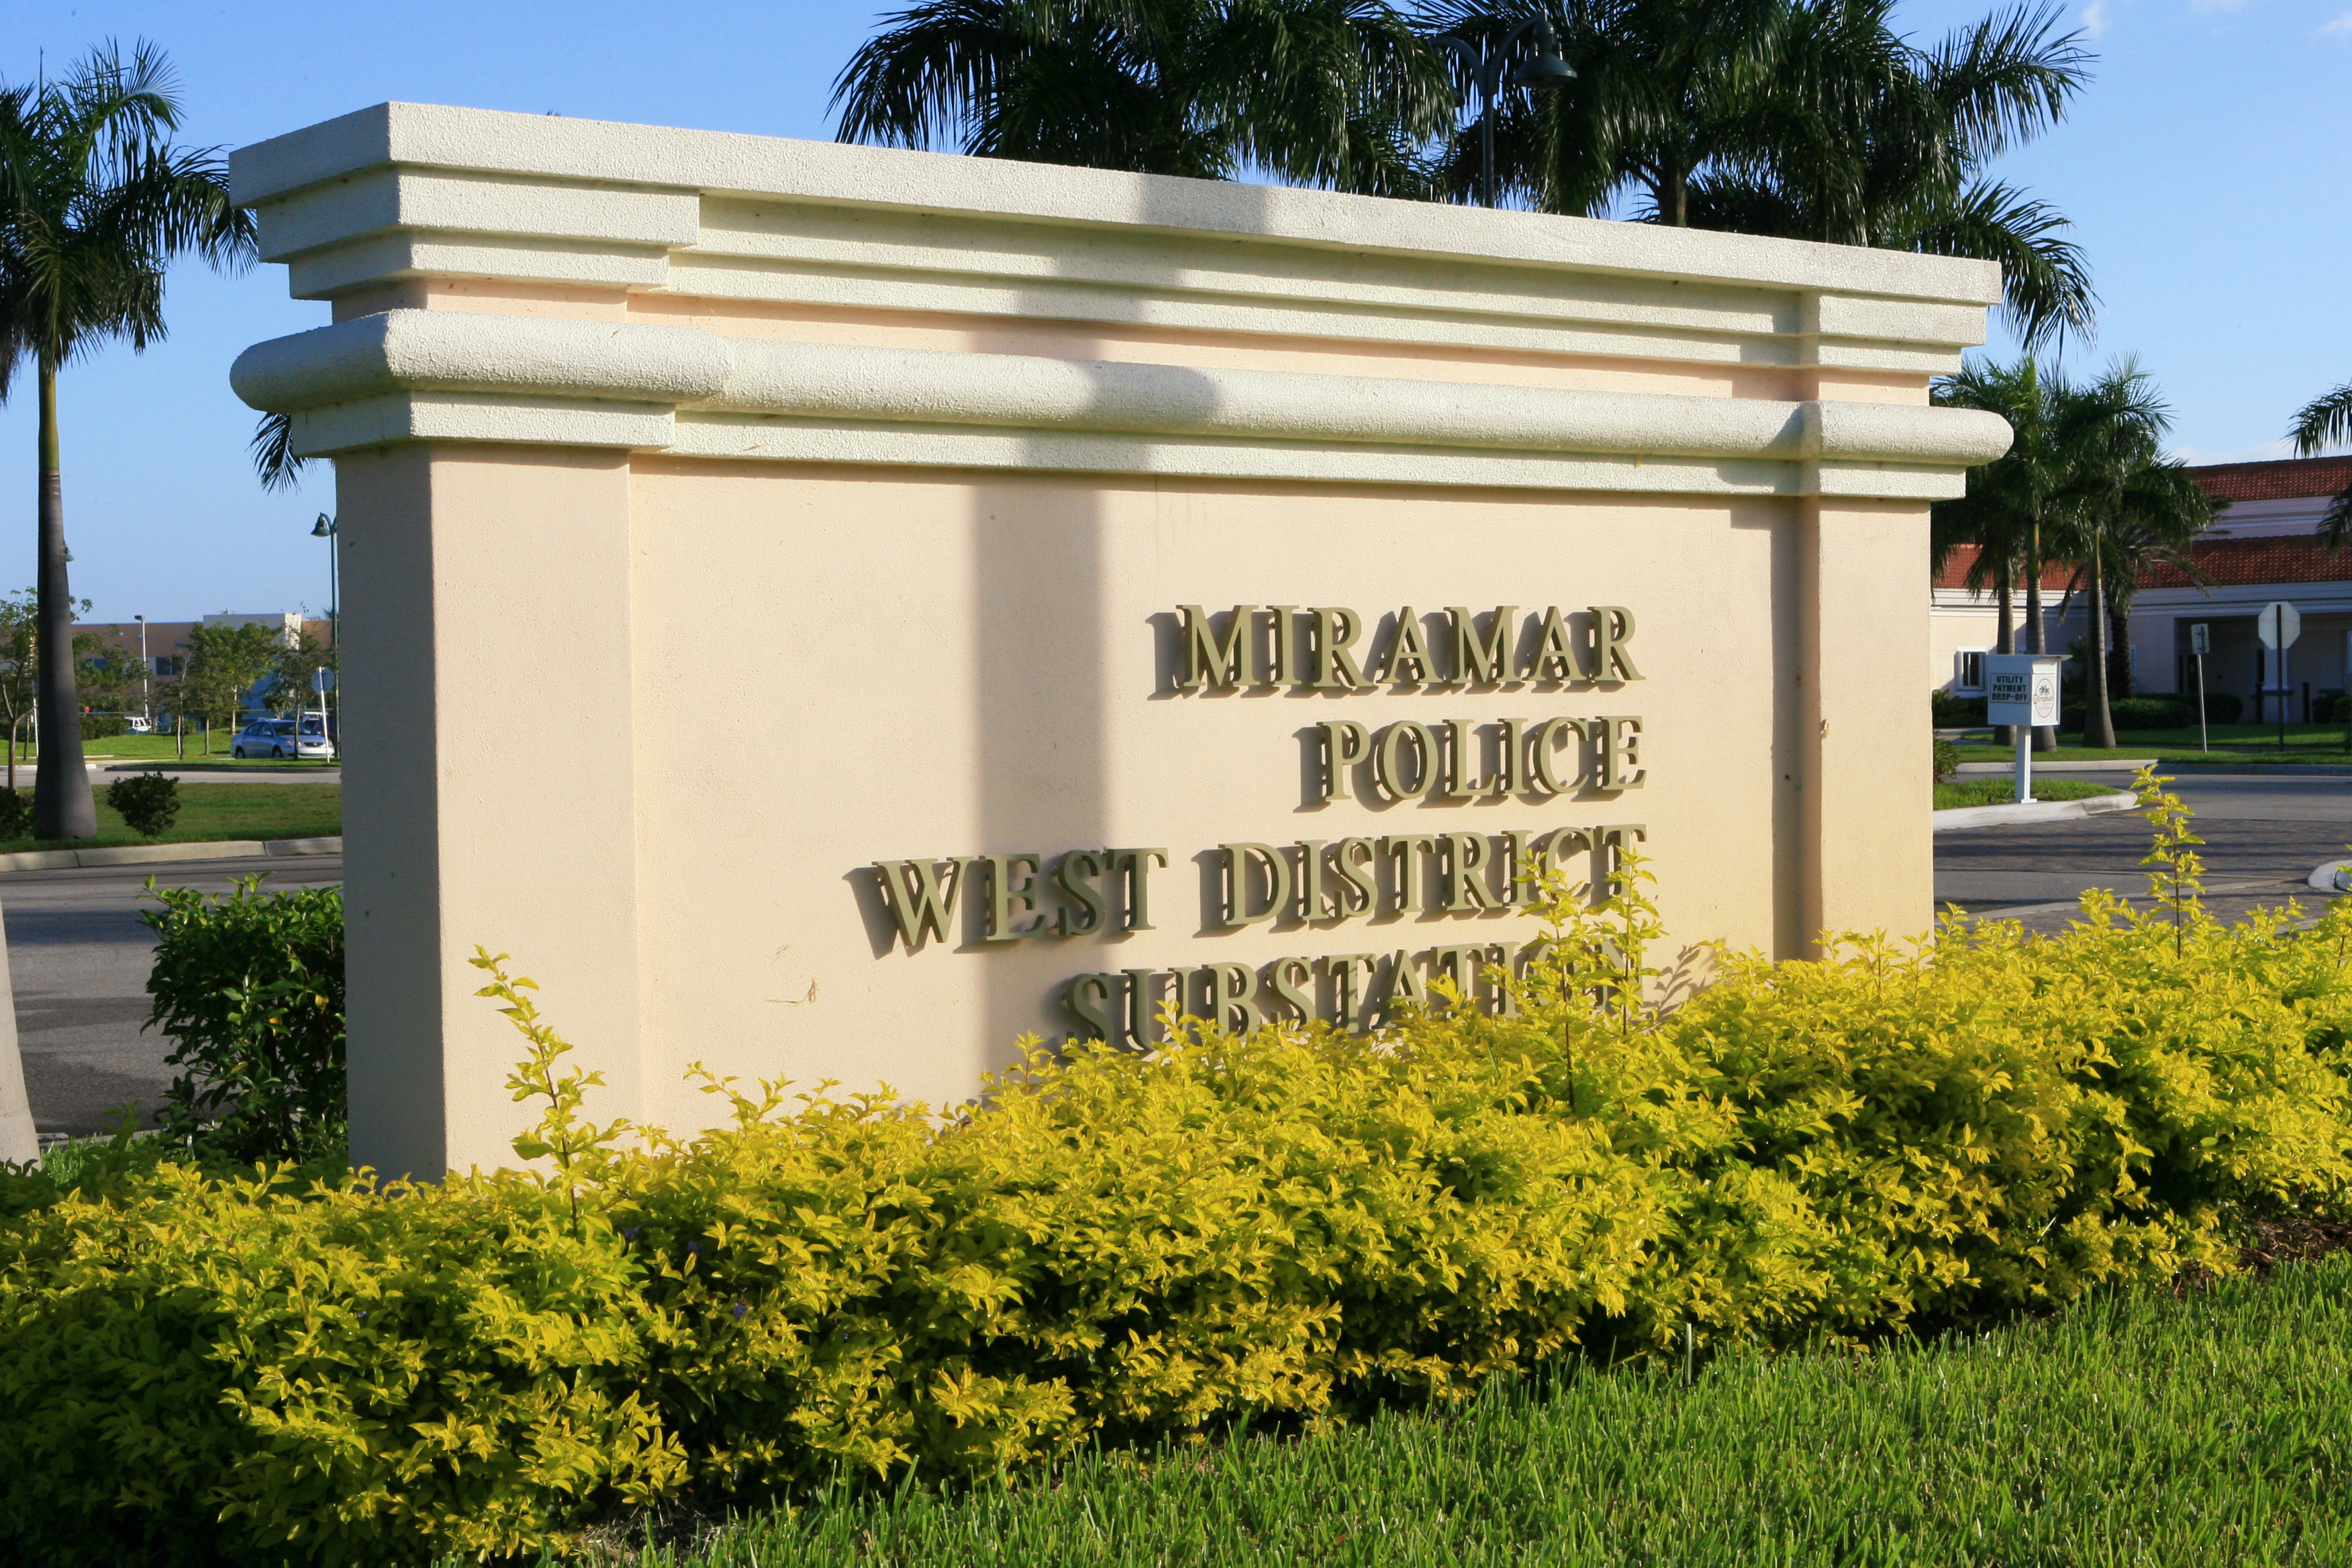 The Miramar Police West District Substation sign